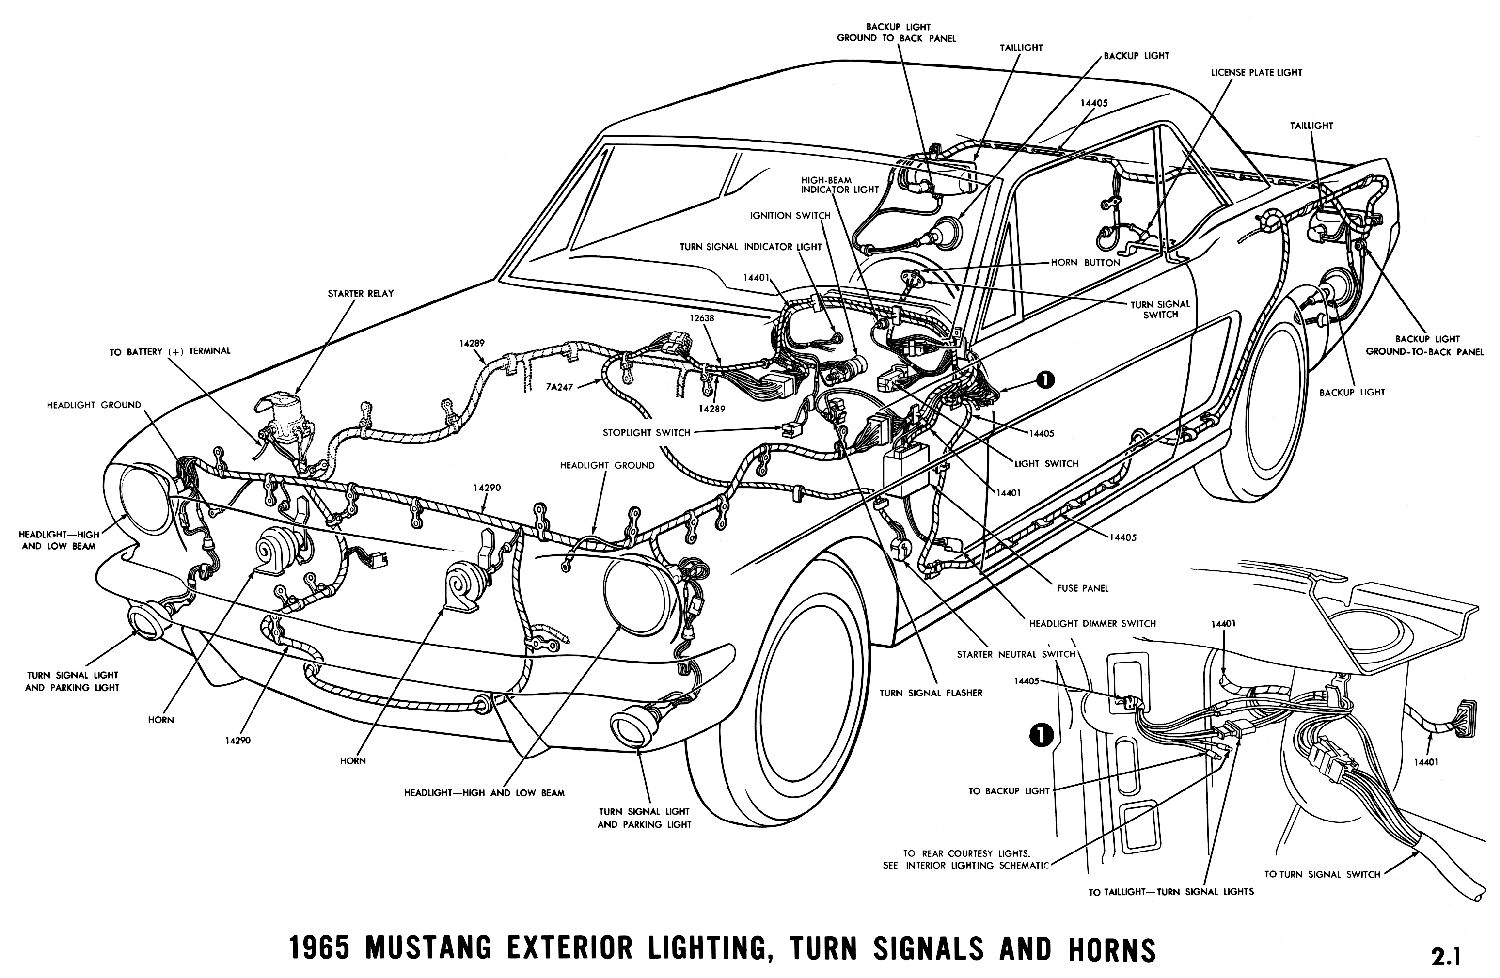 1965 Mustang Wiring Diagrams on neutral safety switch wiring diagram